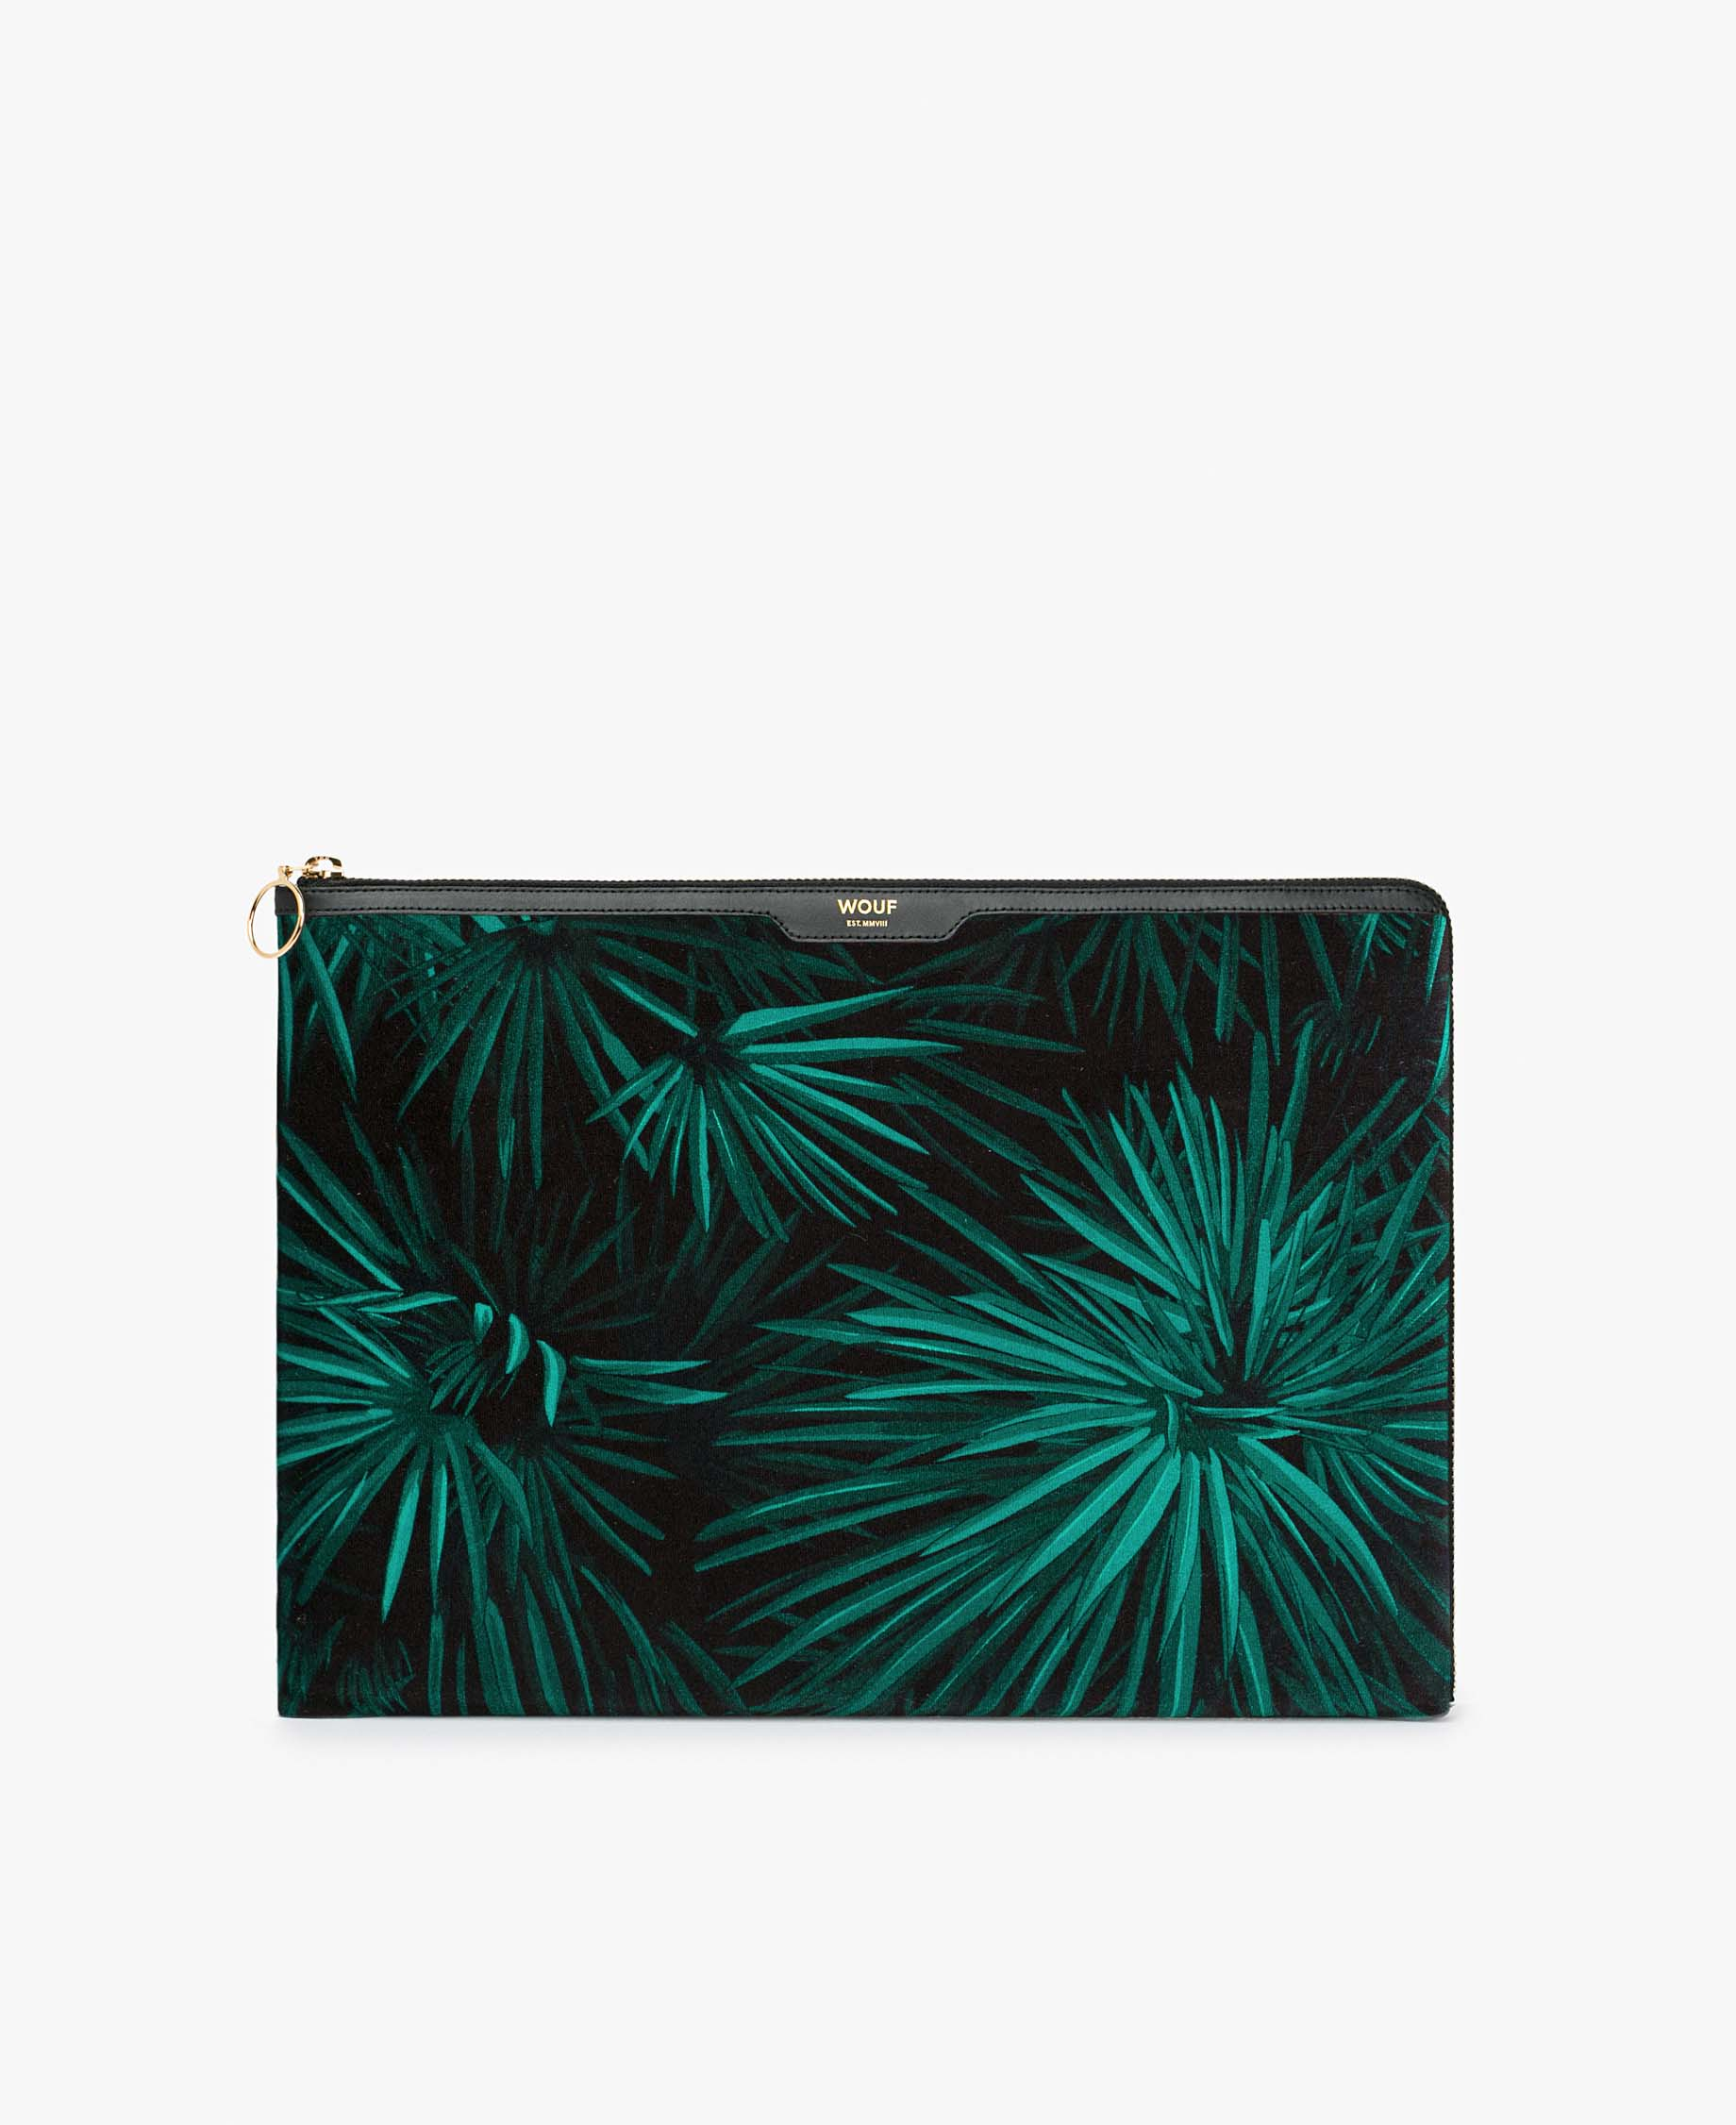 Wouf Amazon Velvet Laptop Case